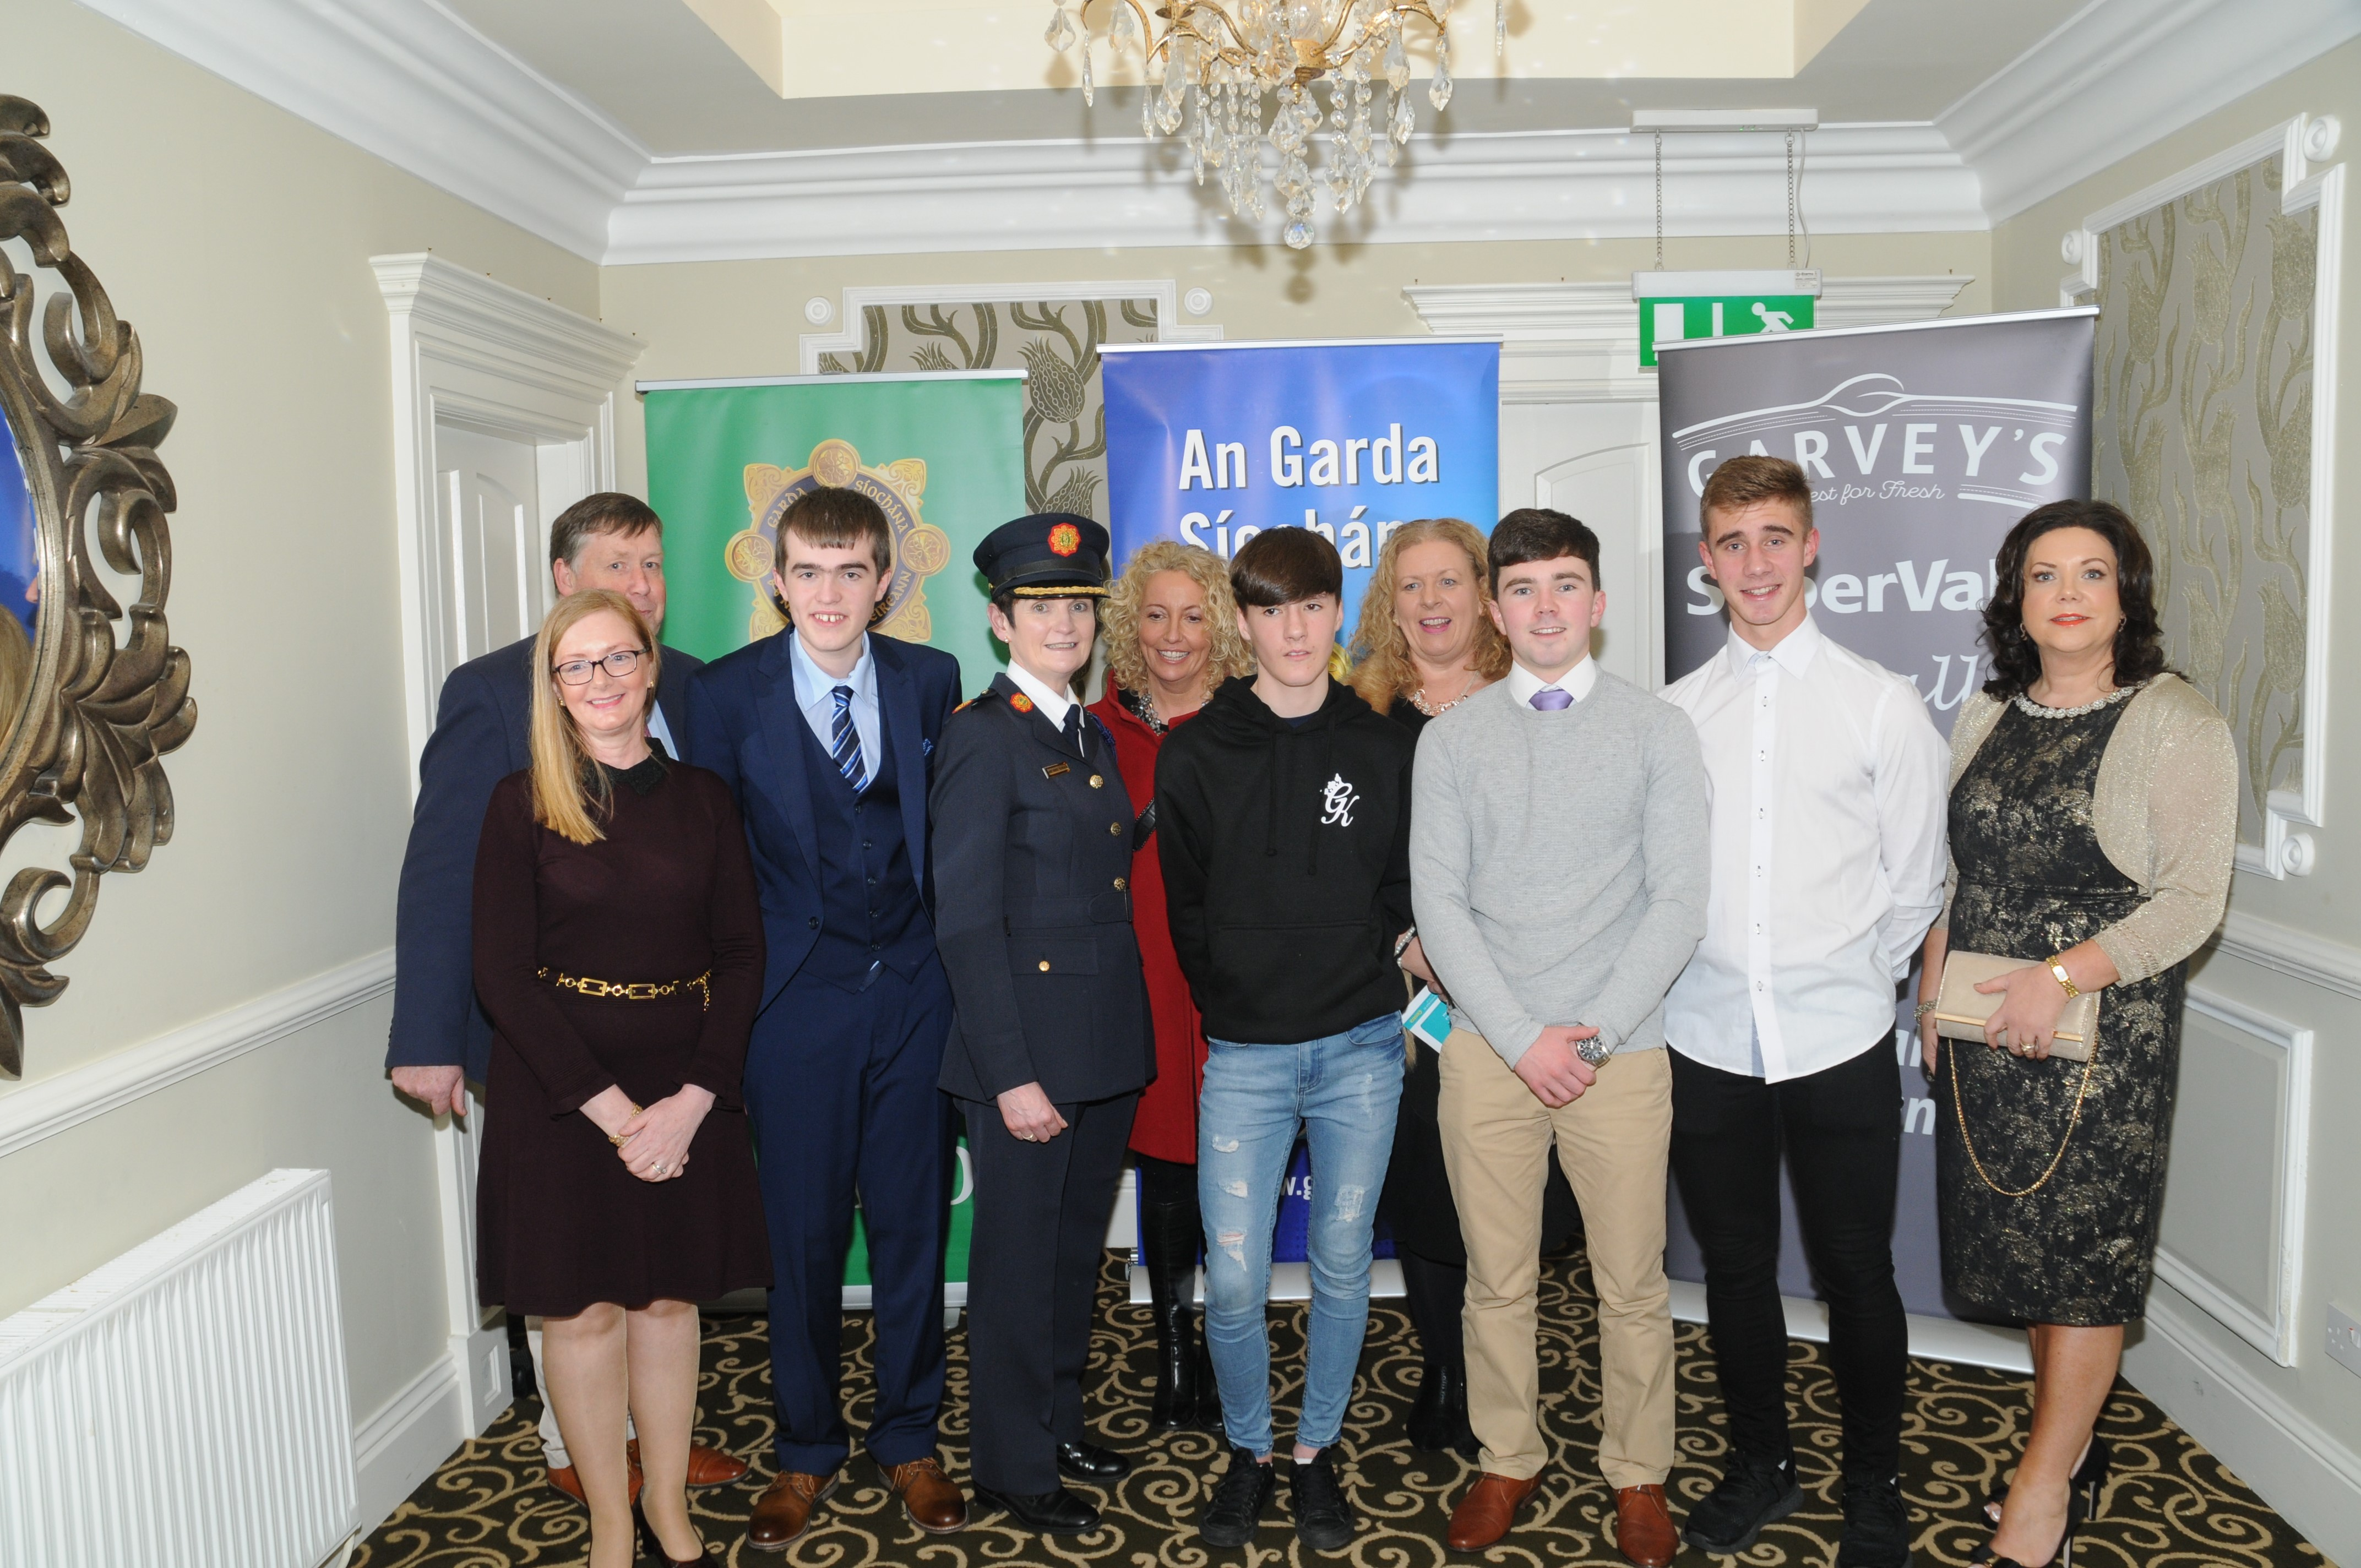 Dec 2018: Ethan Kirwan, Alan Wallace, Thomas Curtin, Dylan Moloney  pictured with their teachers, Year Head and Principal Vourneen Gavin Barry along with members of a An Garda Síochána